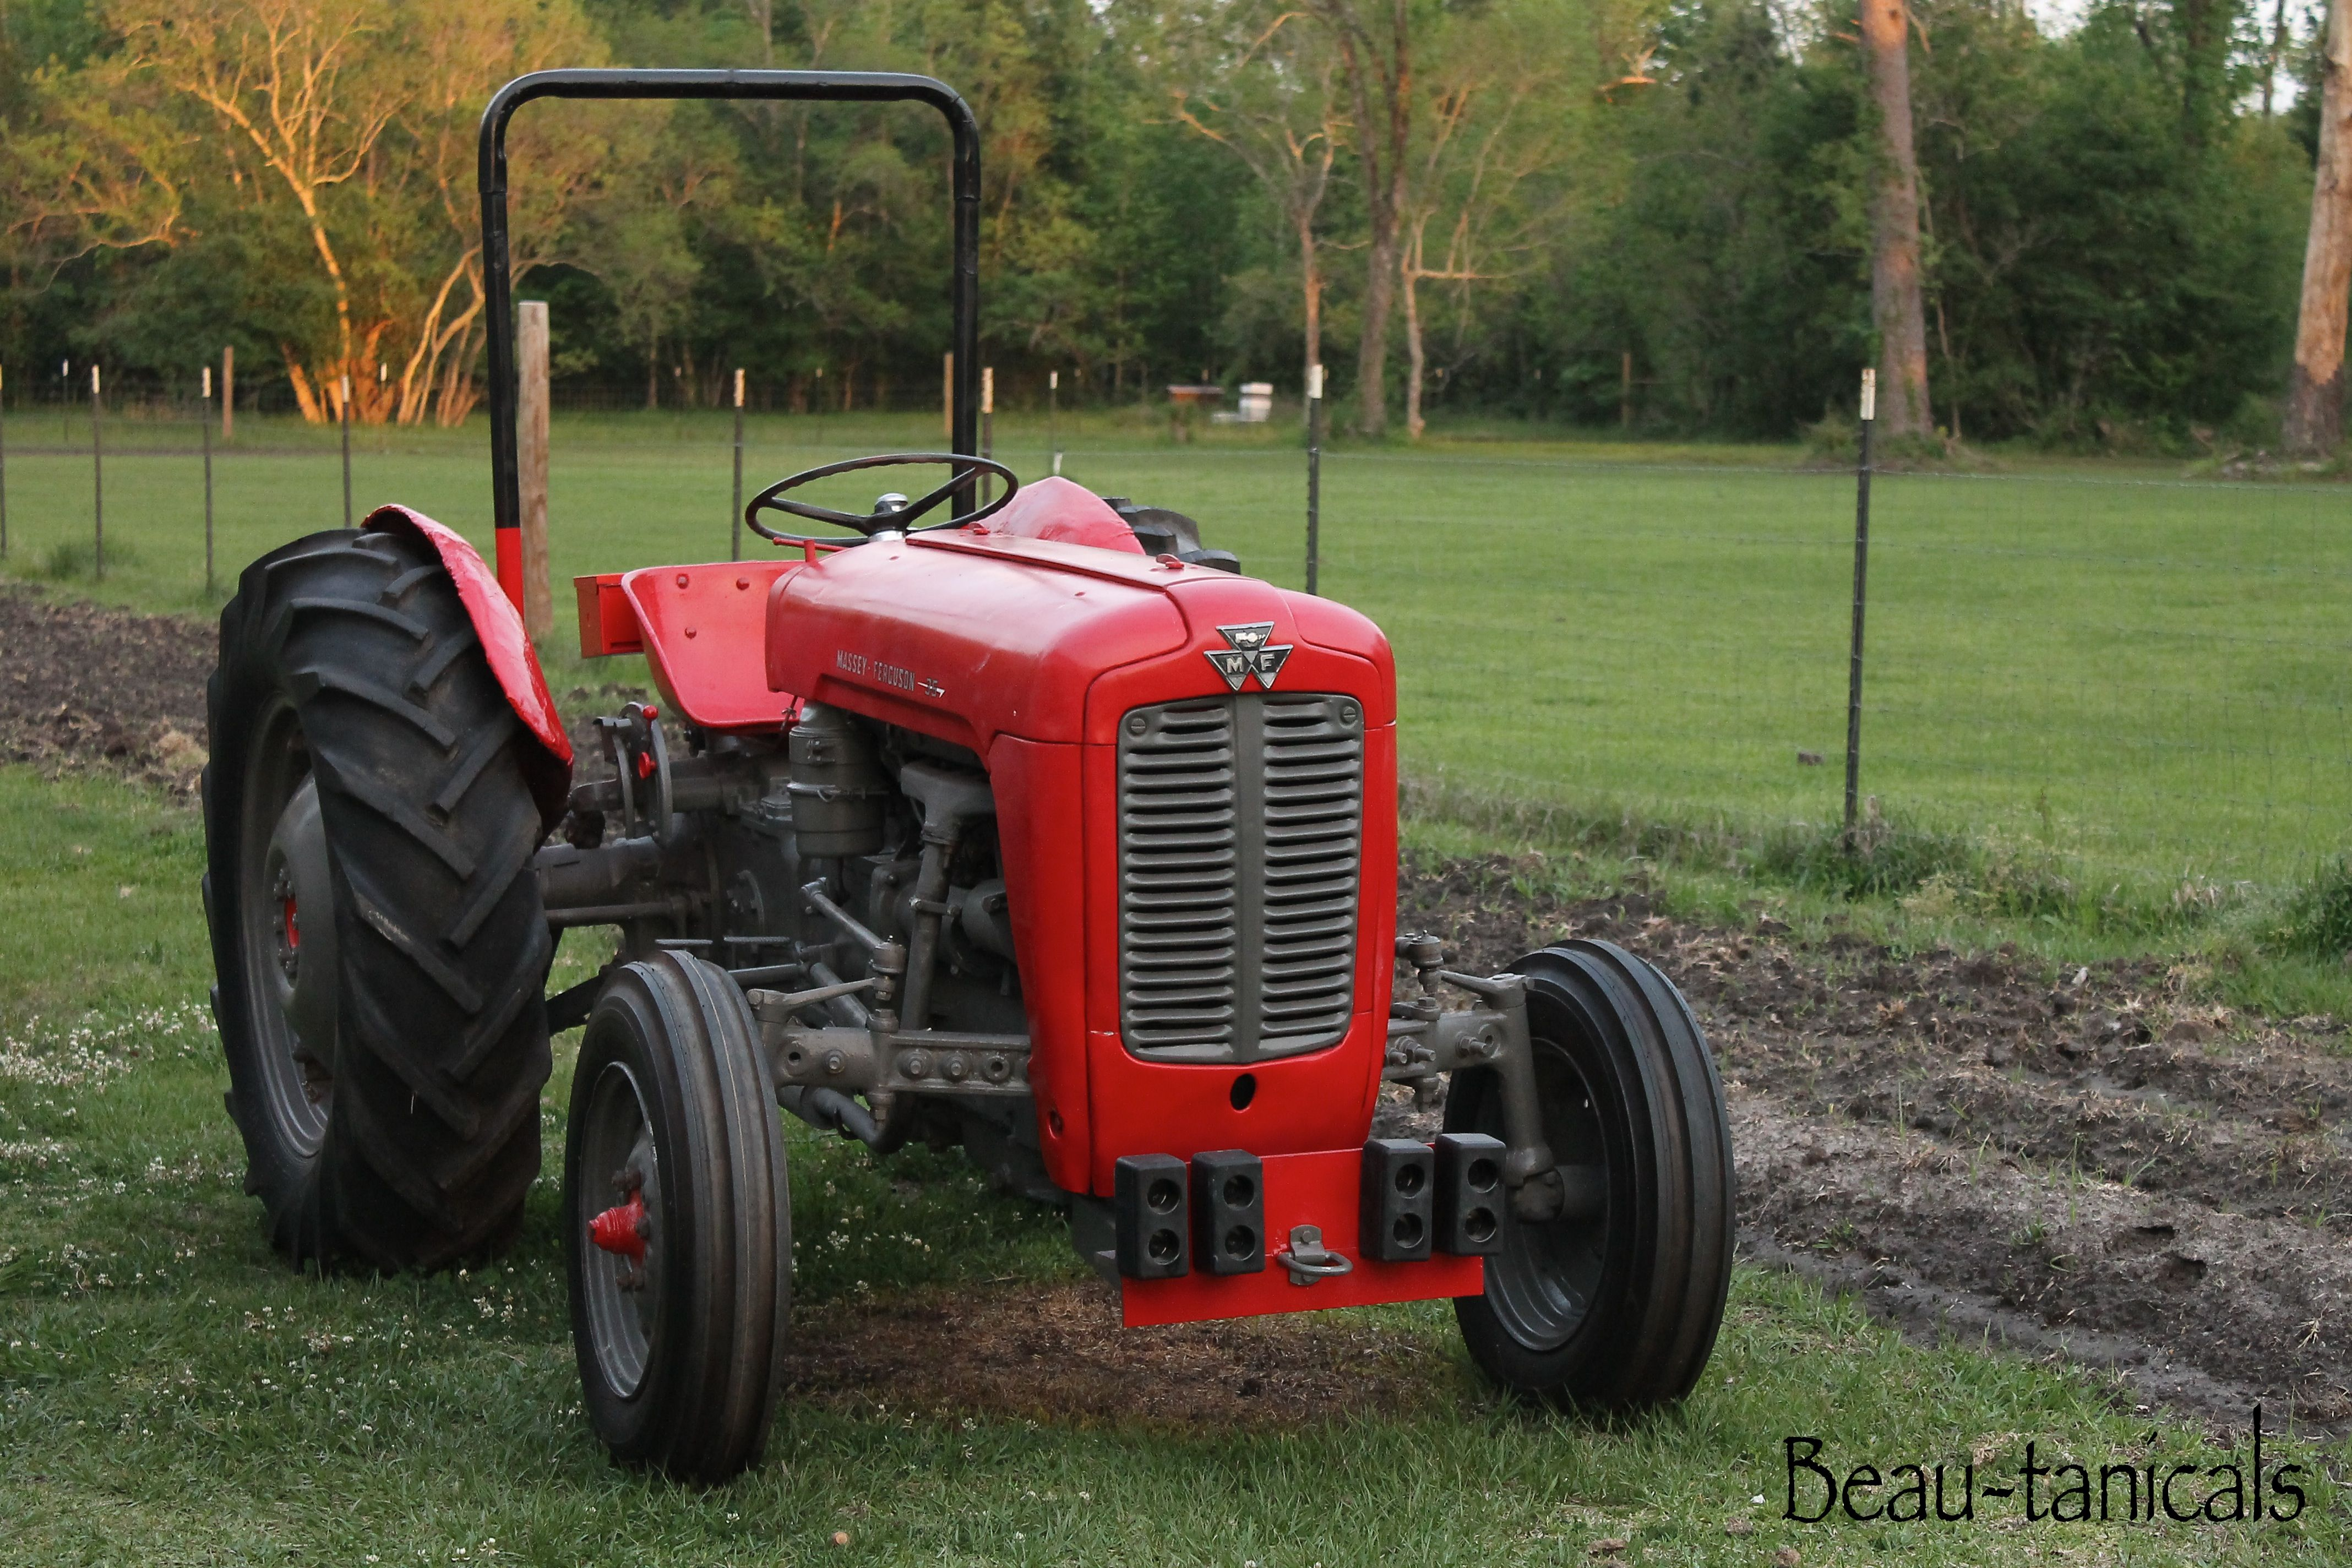 Massey ferguson mf 35 fe 35 service manual this is the maintenance massey ferguson mf 35 fe 35 service manual this is the maintenance manual for 35 series tractors mf 35 fe 35n be used by anyone from a first t fandeluxe Gallery